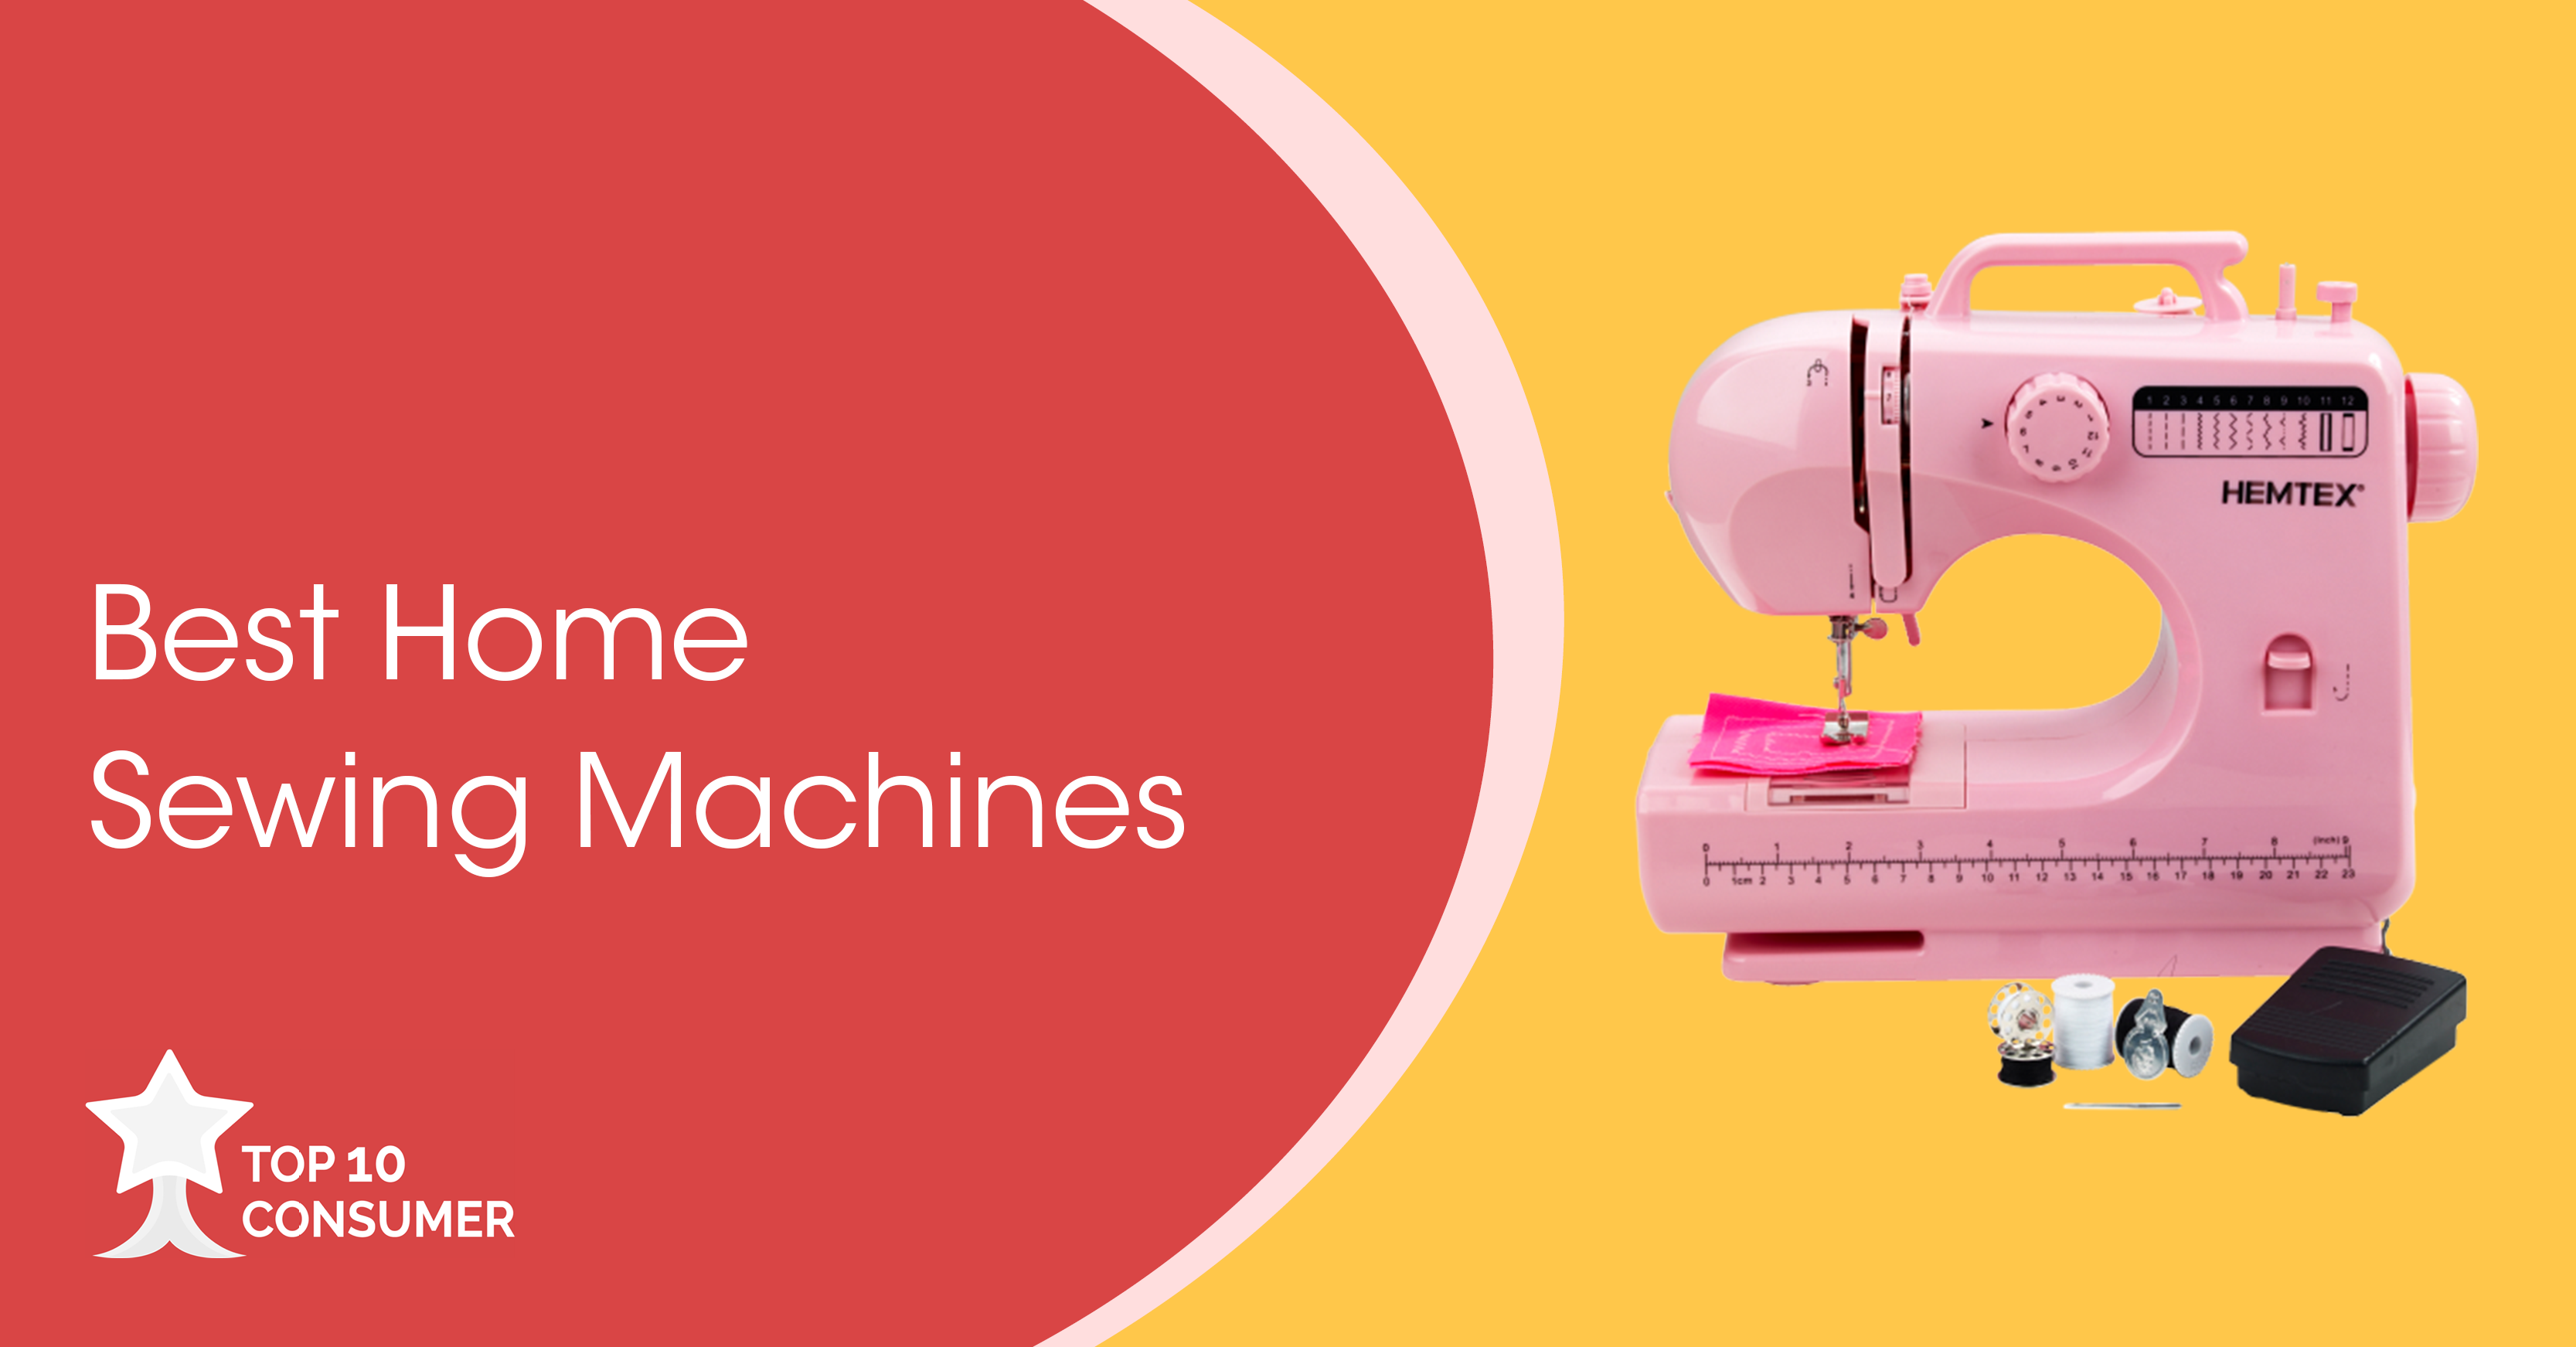 Best Home Sewing Machine: 10 Options